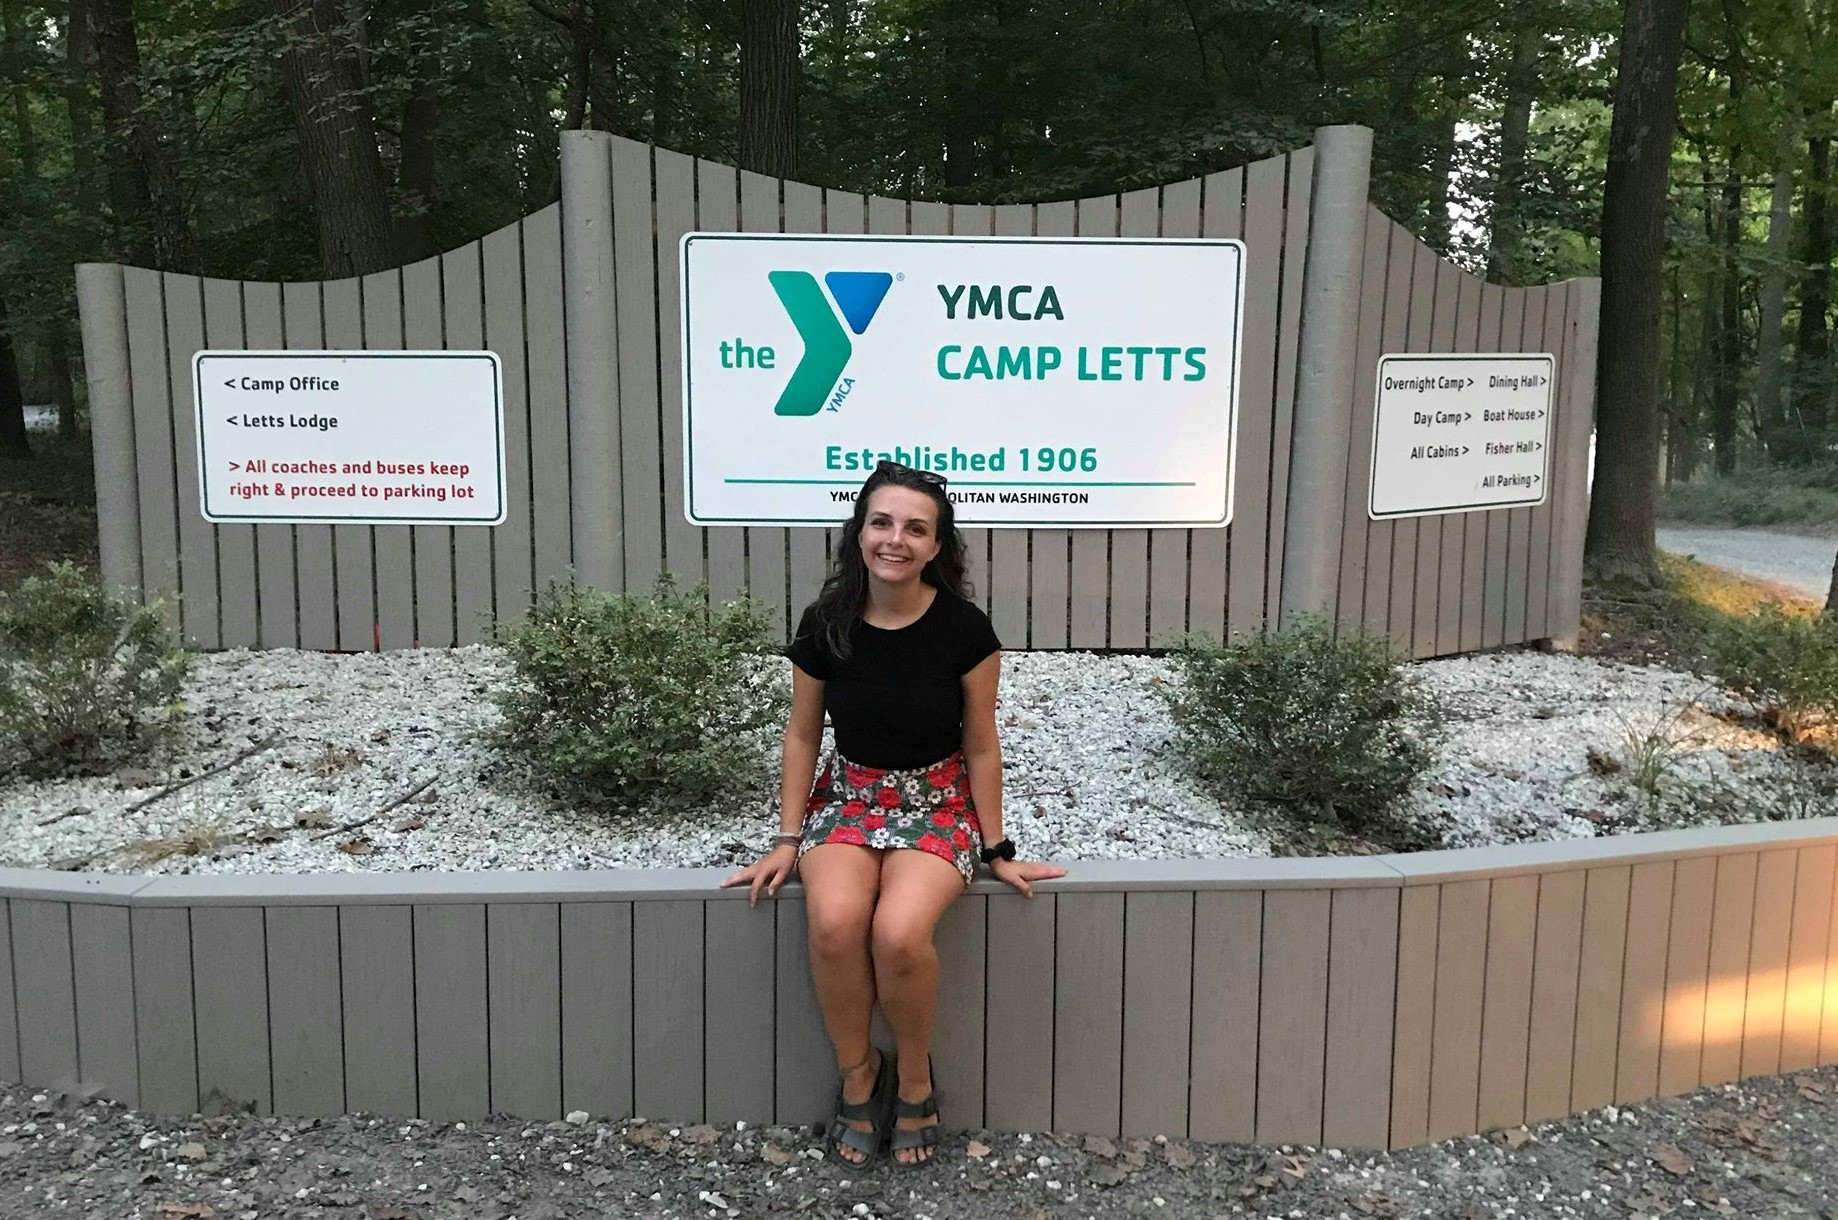 Megan at the summer camp